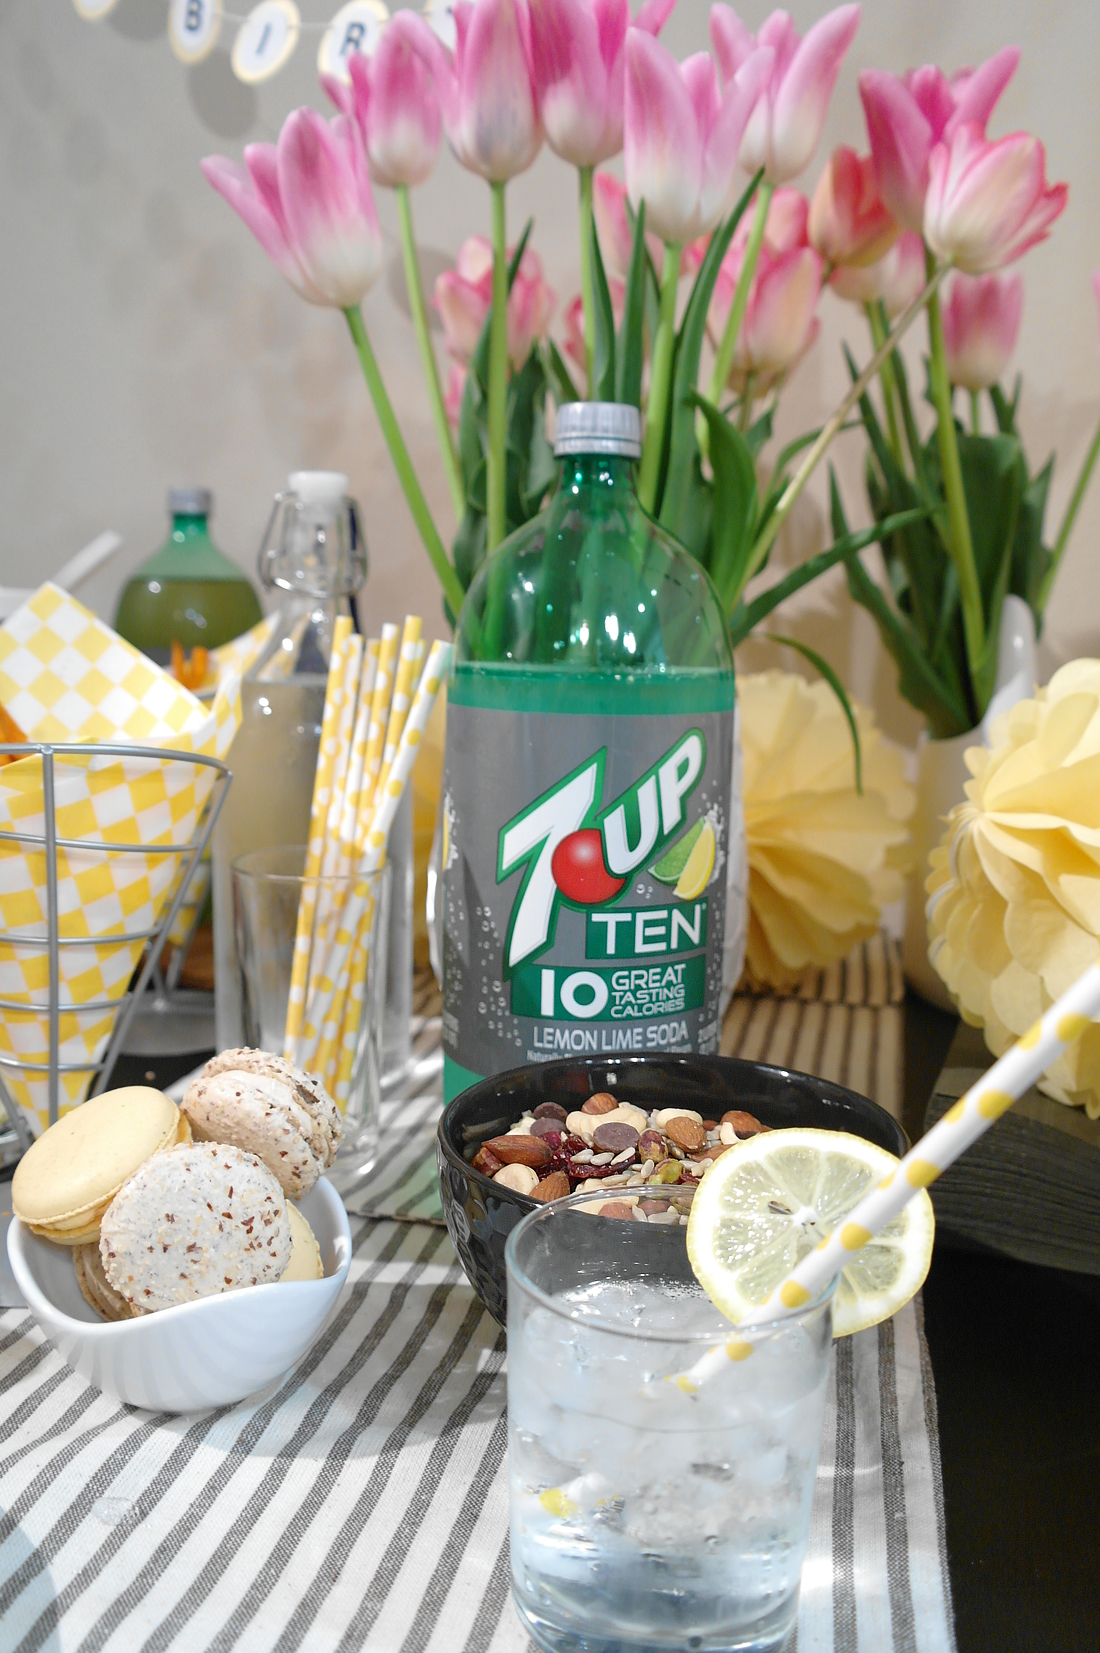 7up-ten-calorie-drink